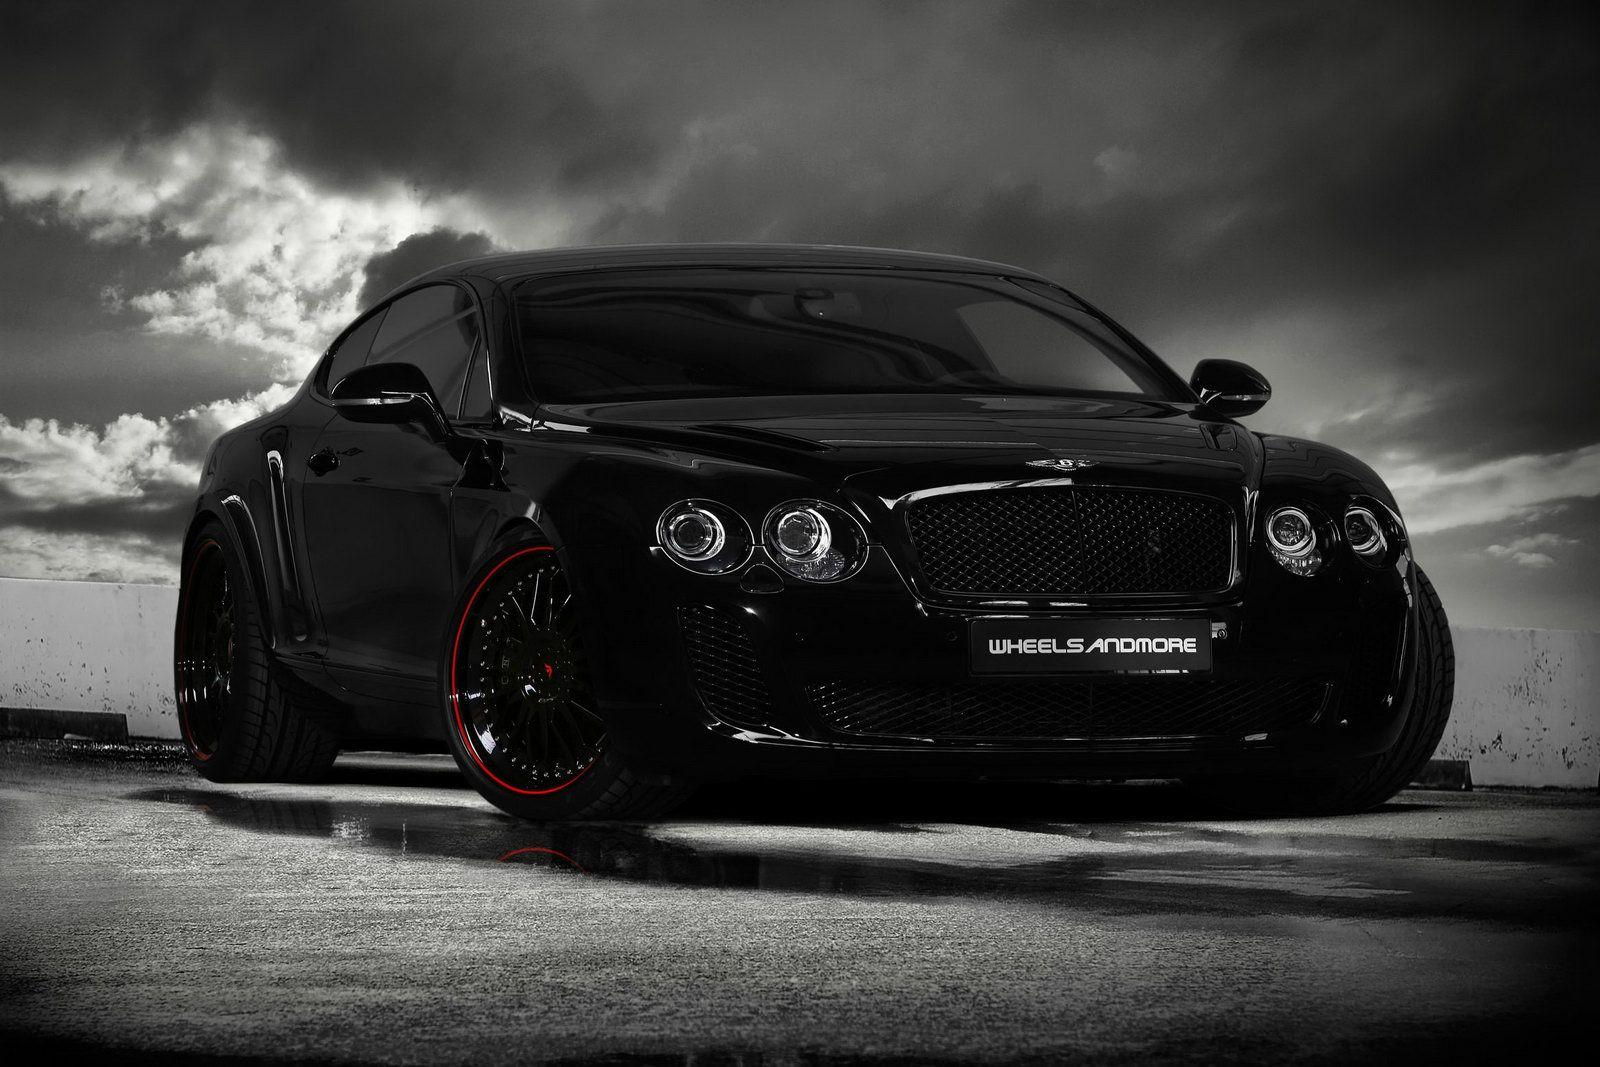 Bentley Continental GT Ultrasports hd wallpaper | cars ...